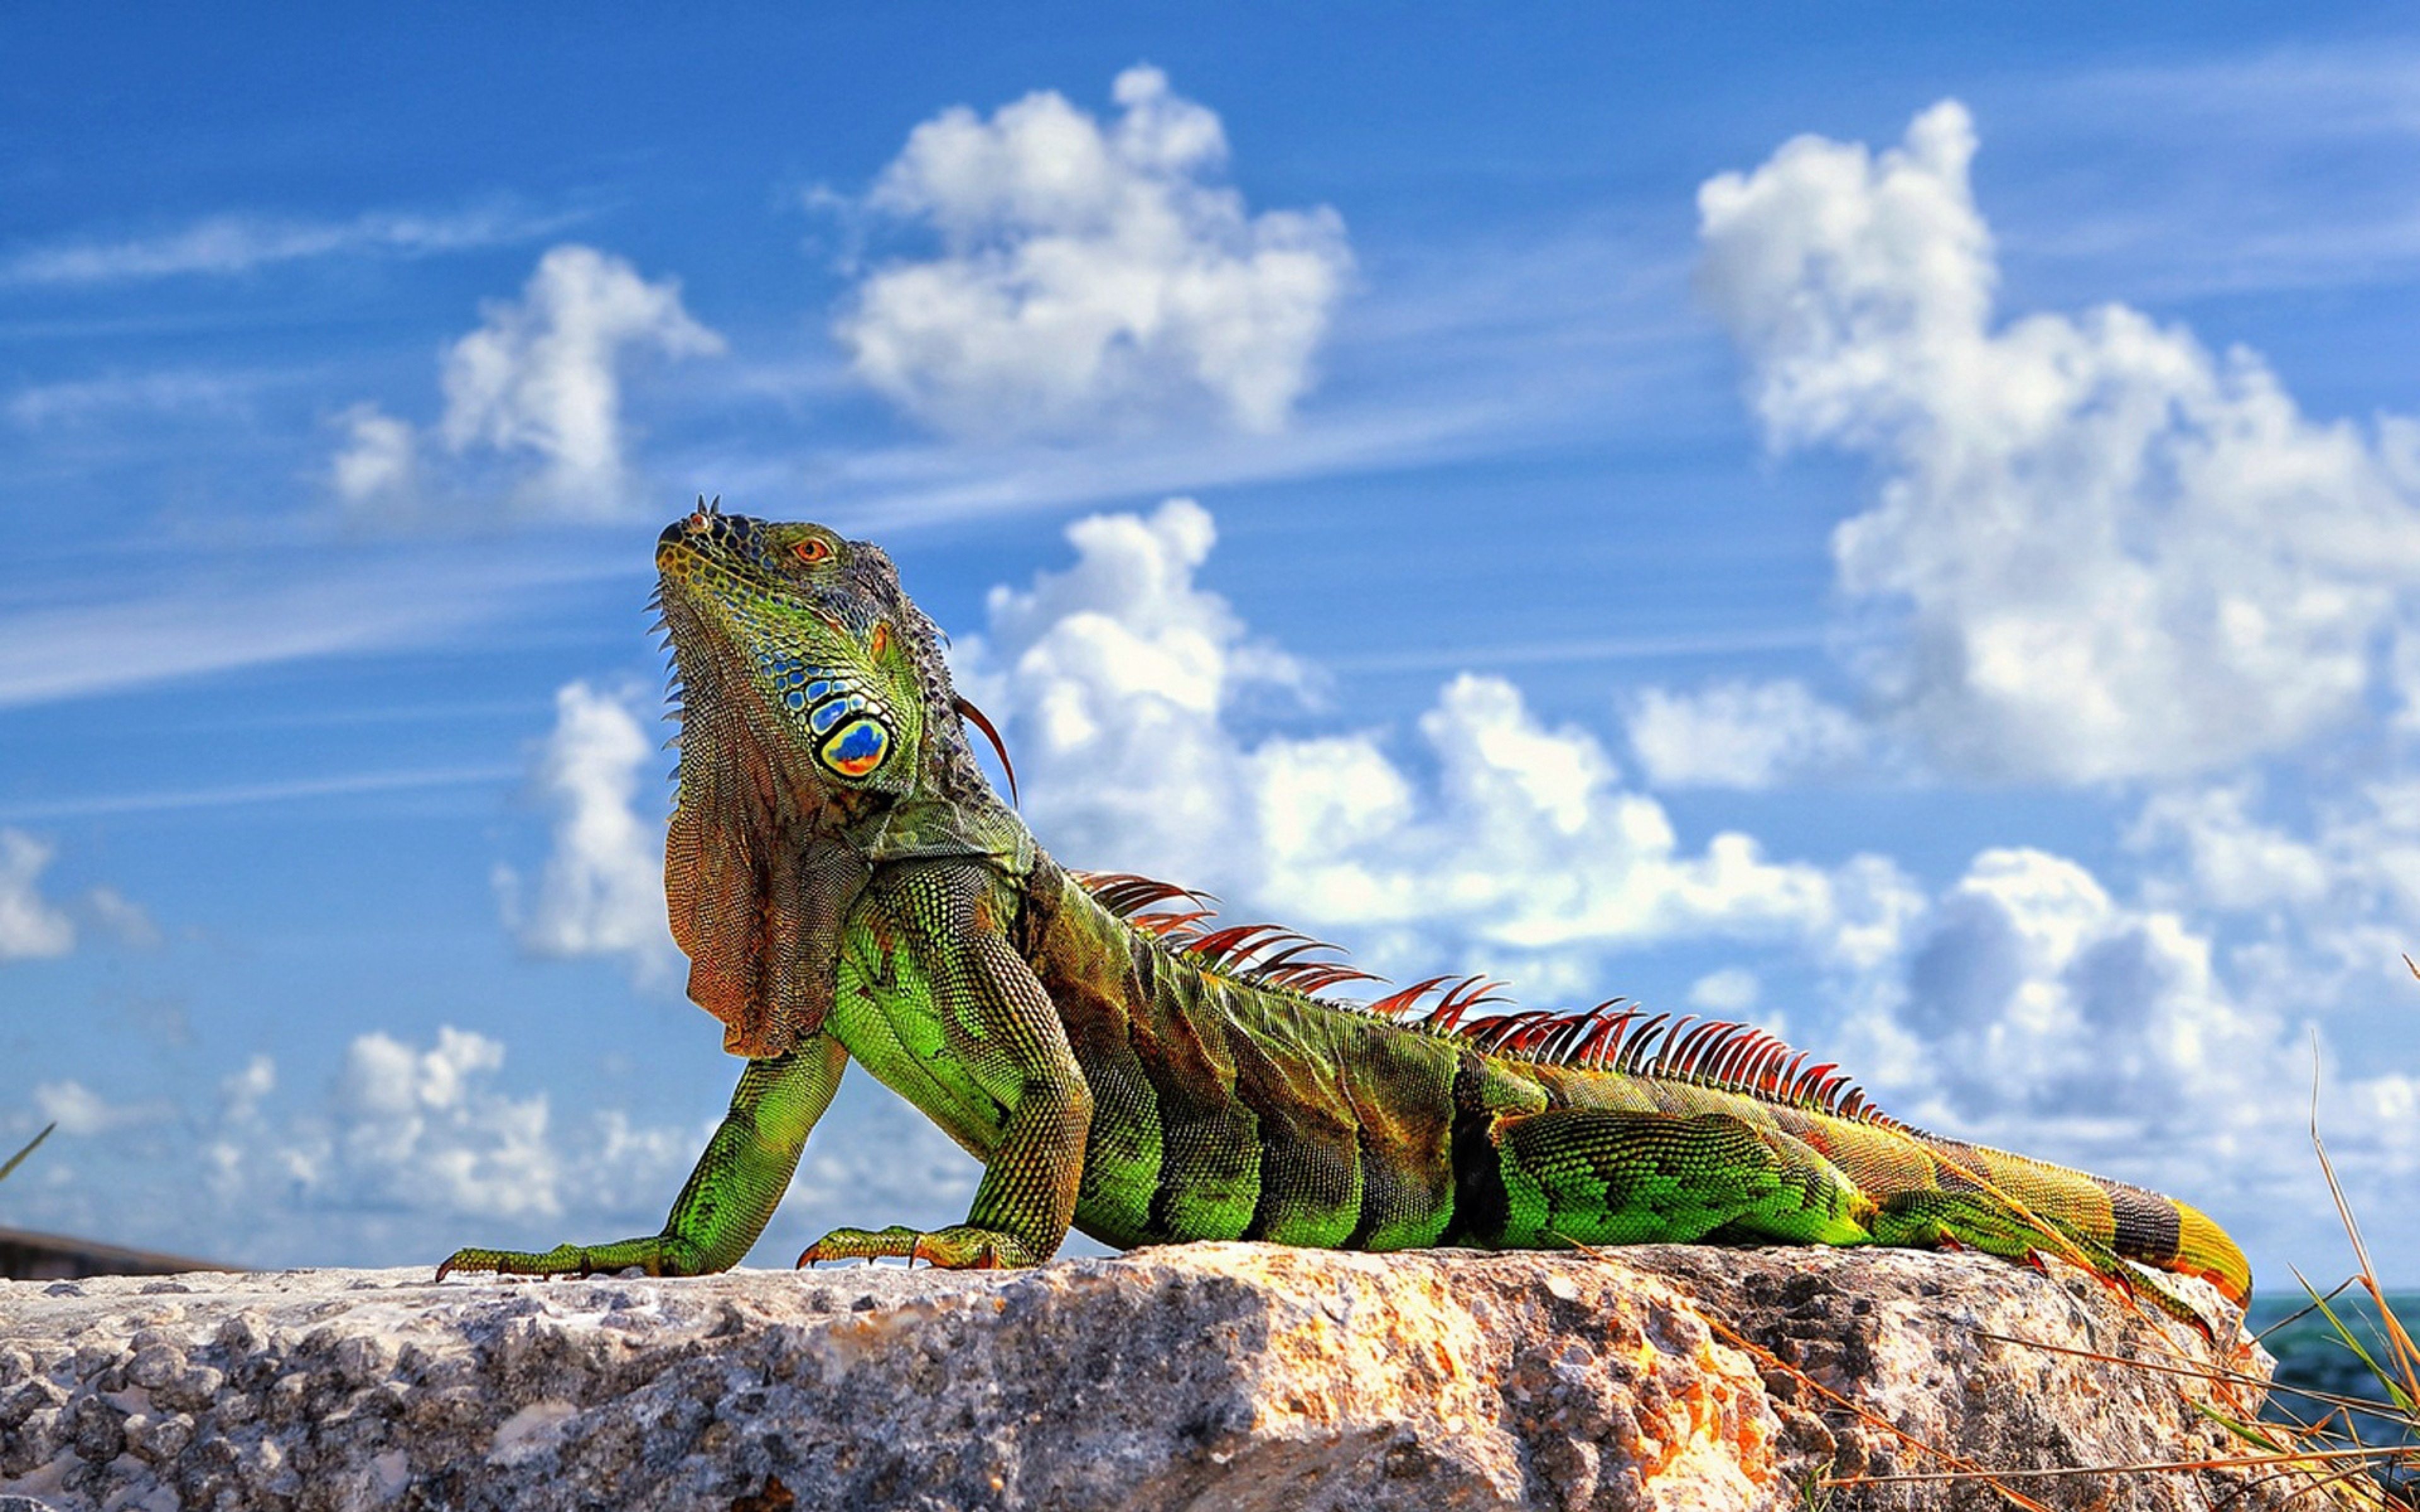 Lizard Wallpapers High Quality | Download Free